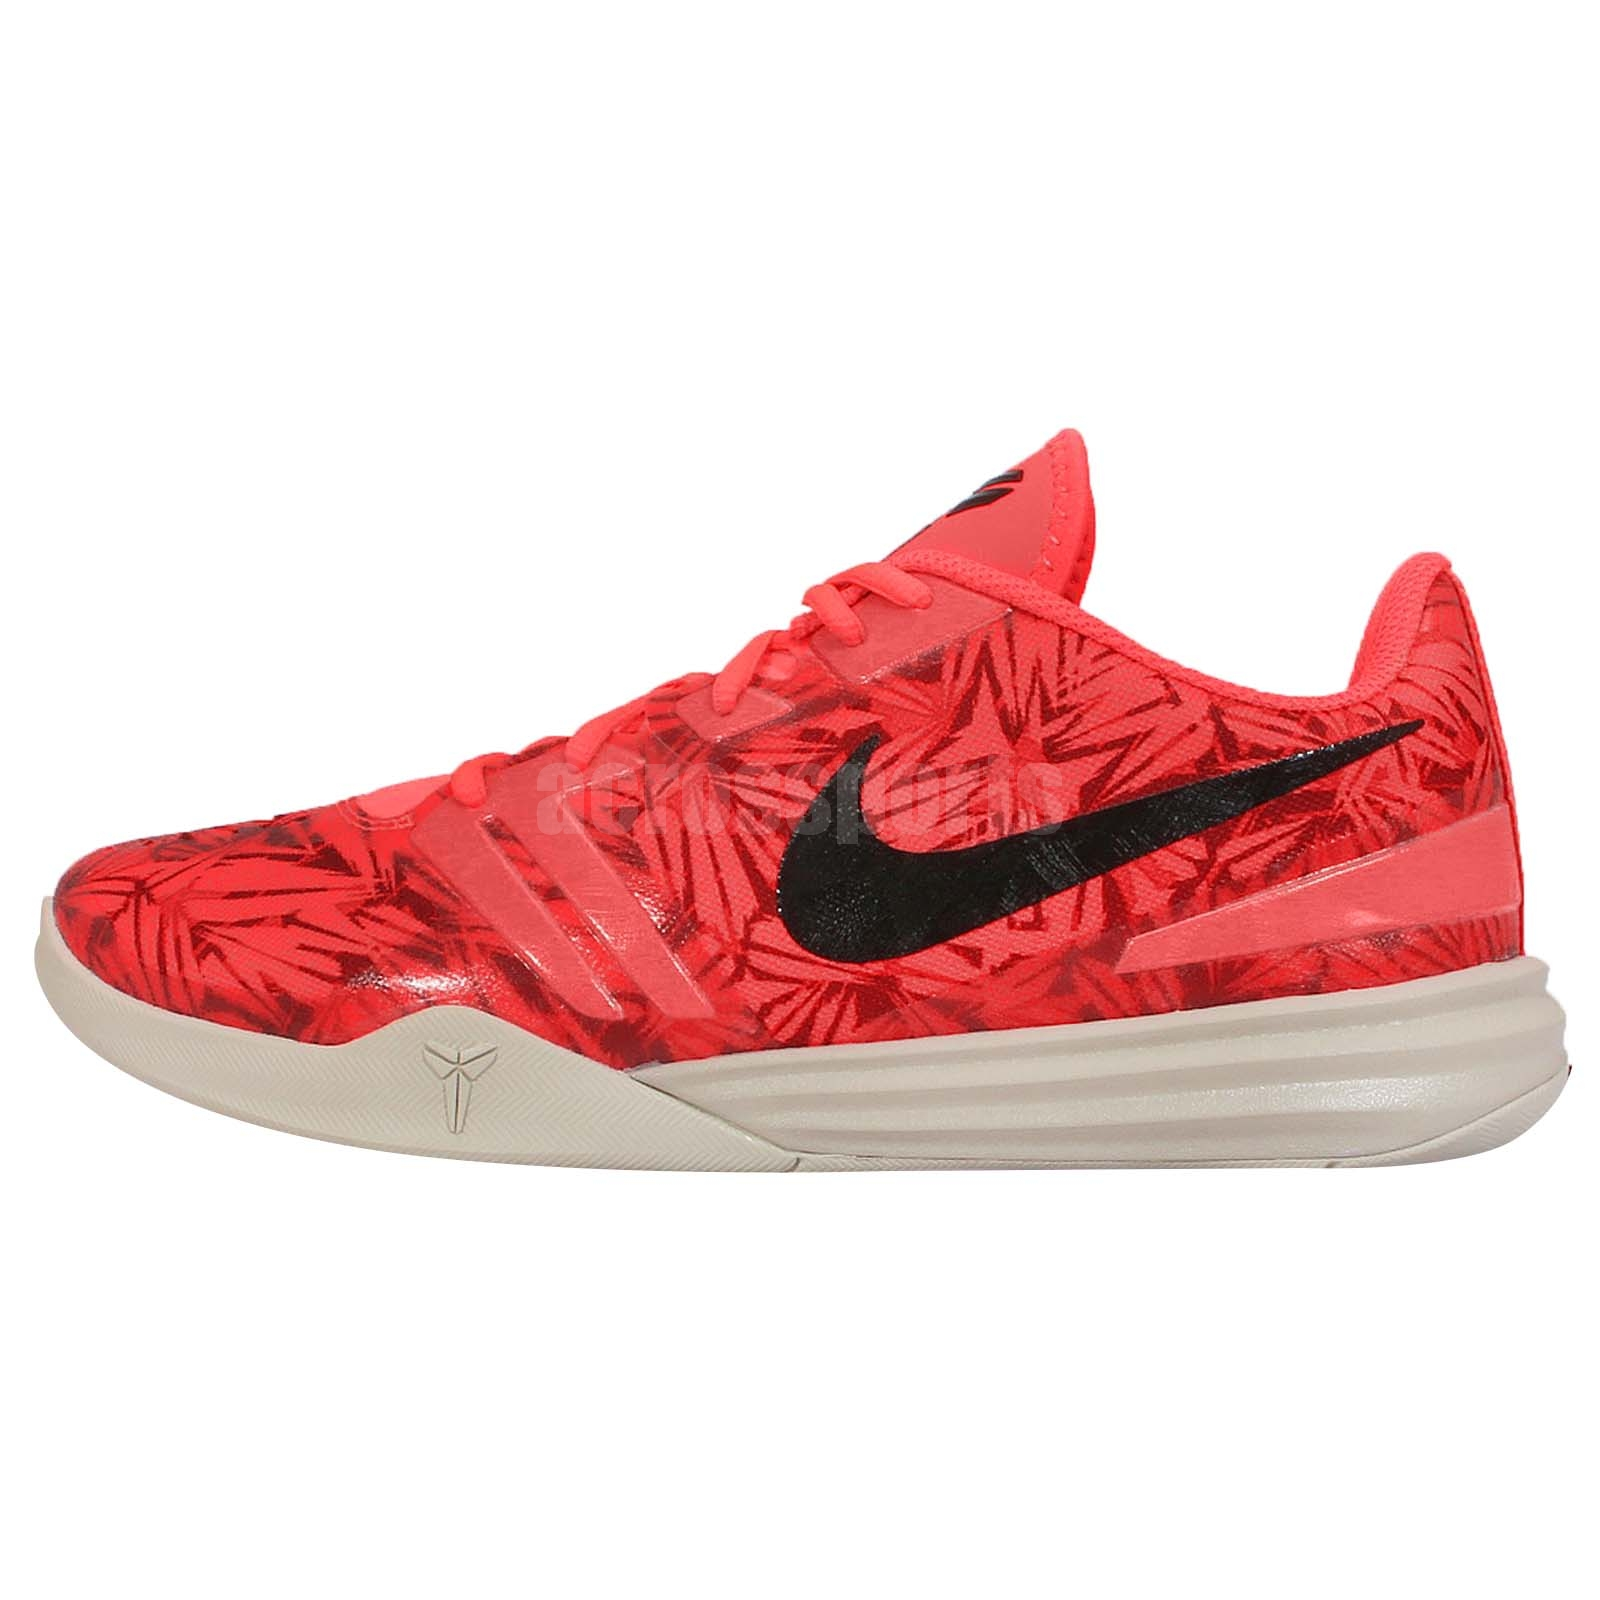 nike kb mentality pink mens basketball shoes